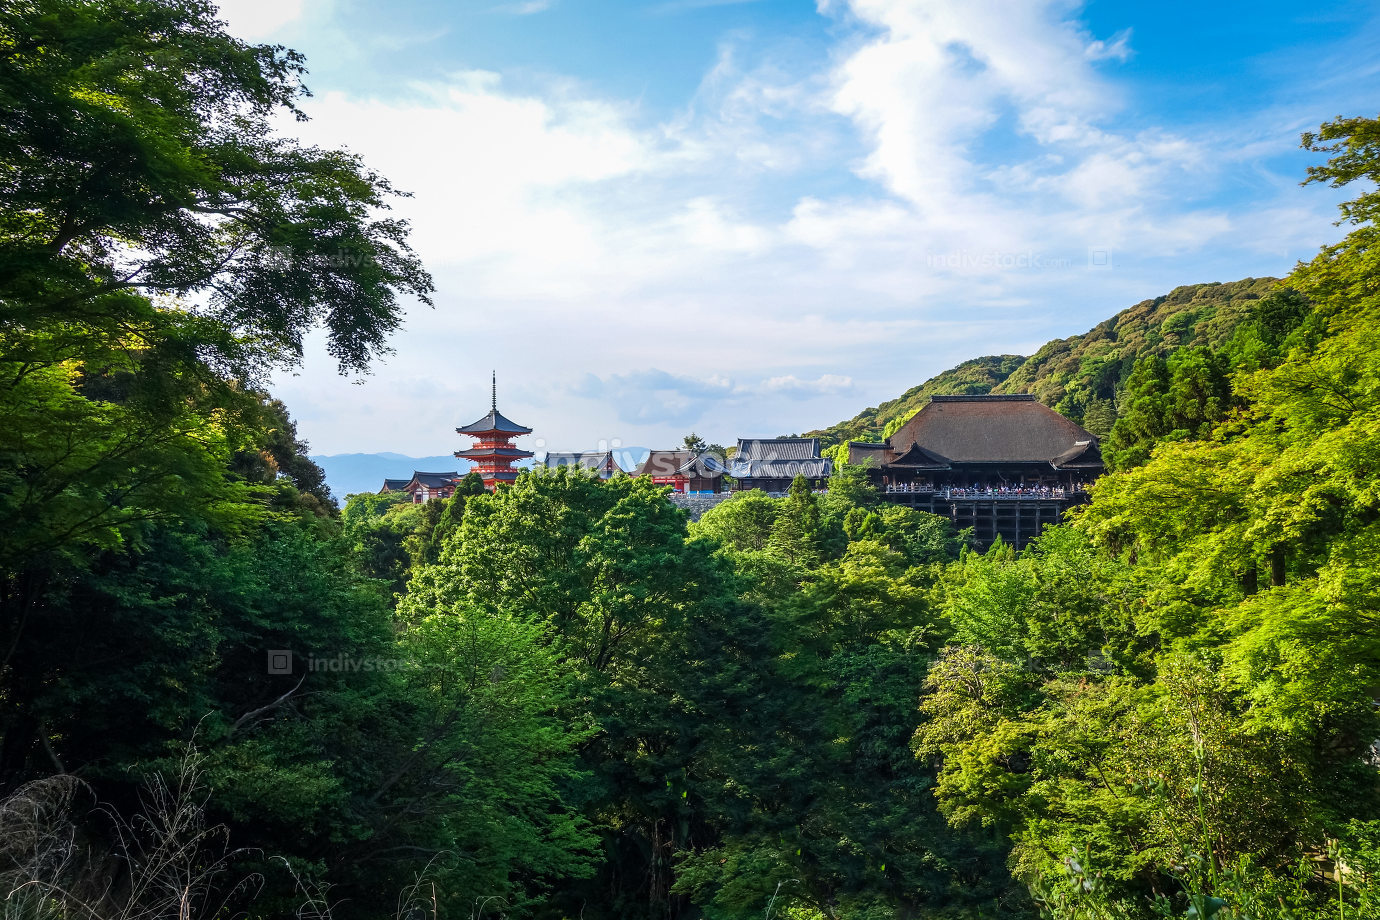 kiyomizu-dera temple and pagoda, Kyoto, Japan